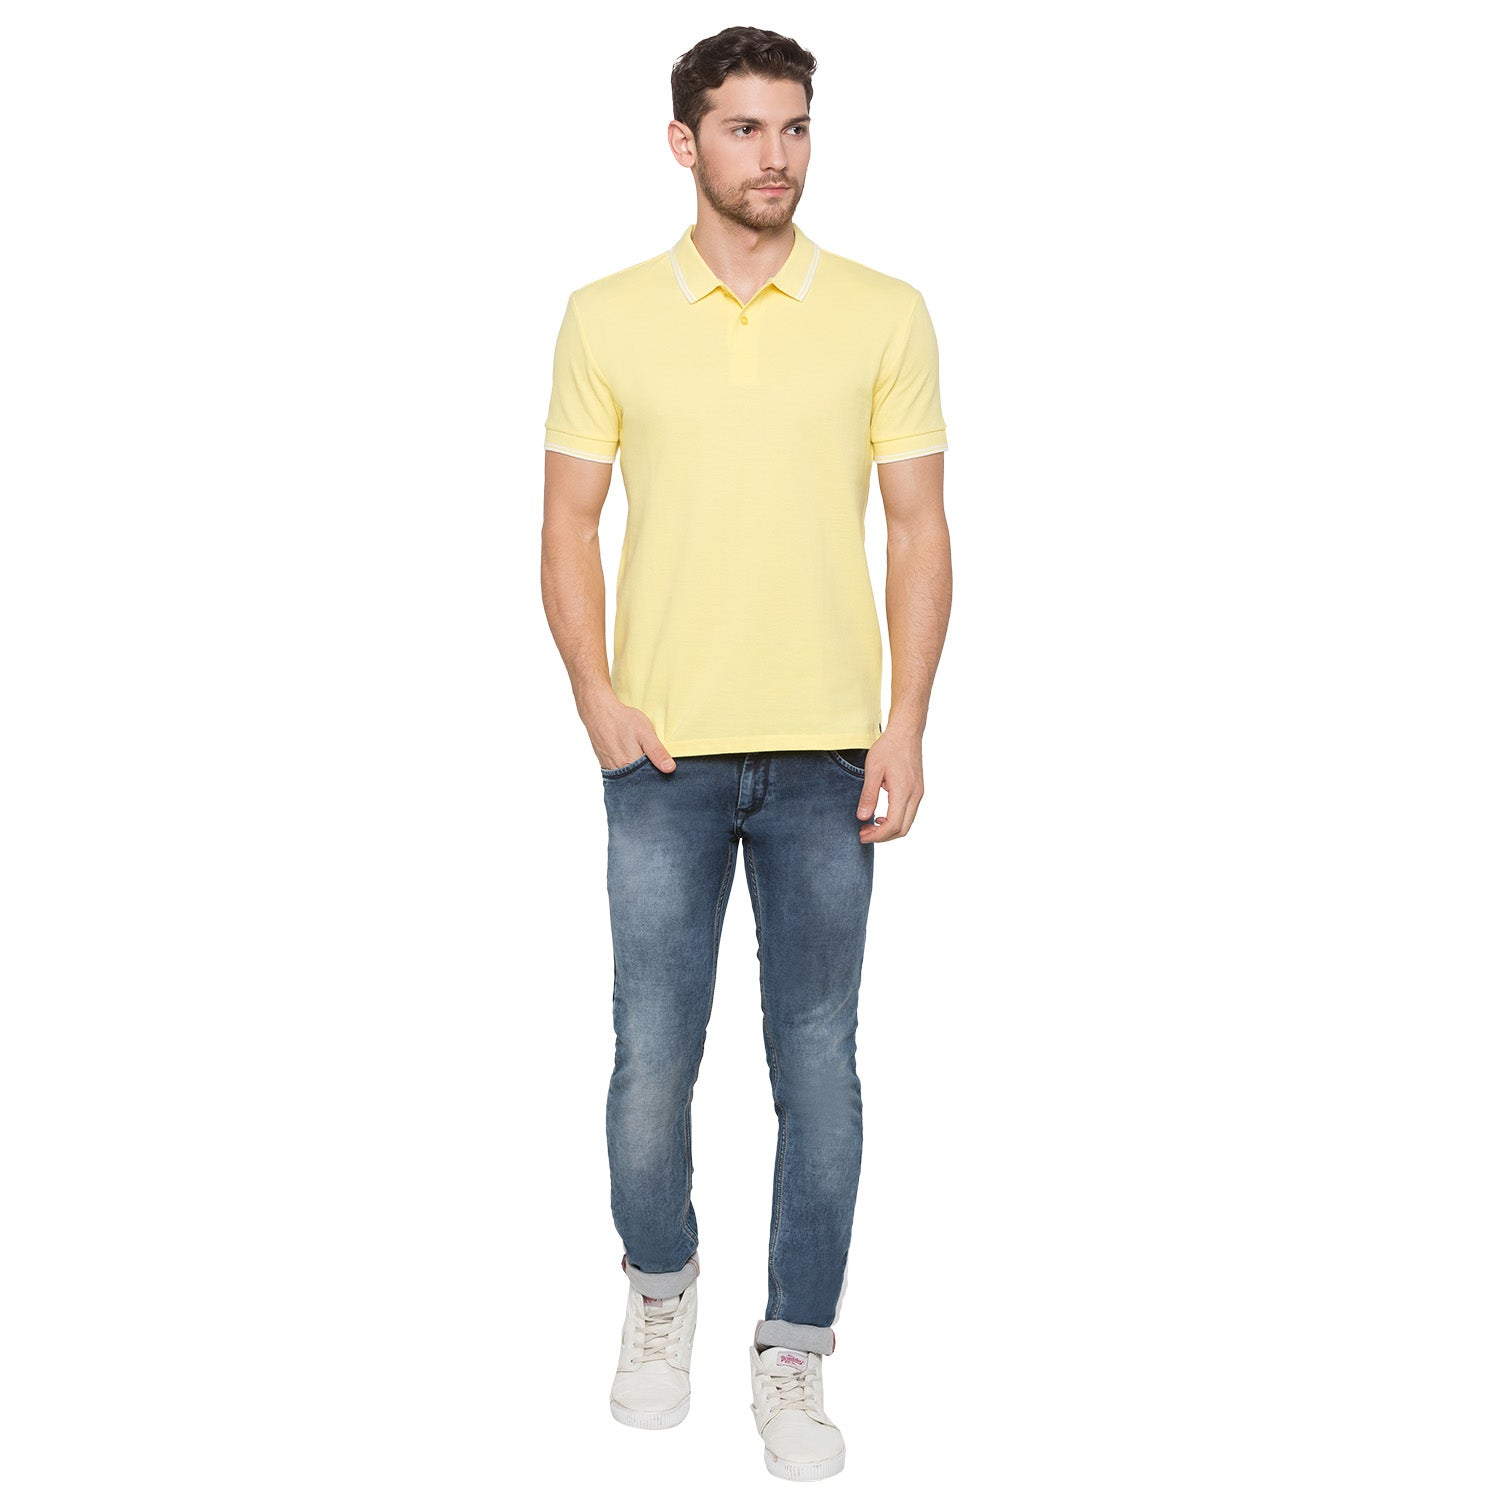 Globus Yellow Solid Polo T-Shirt4